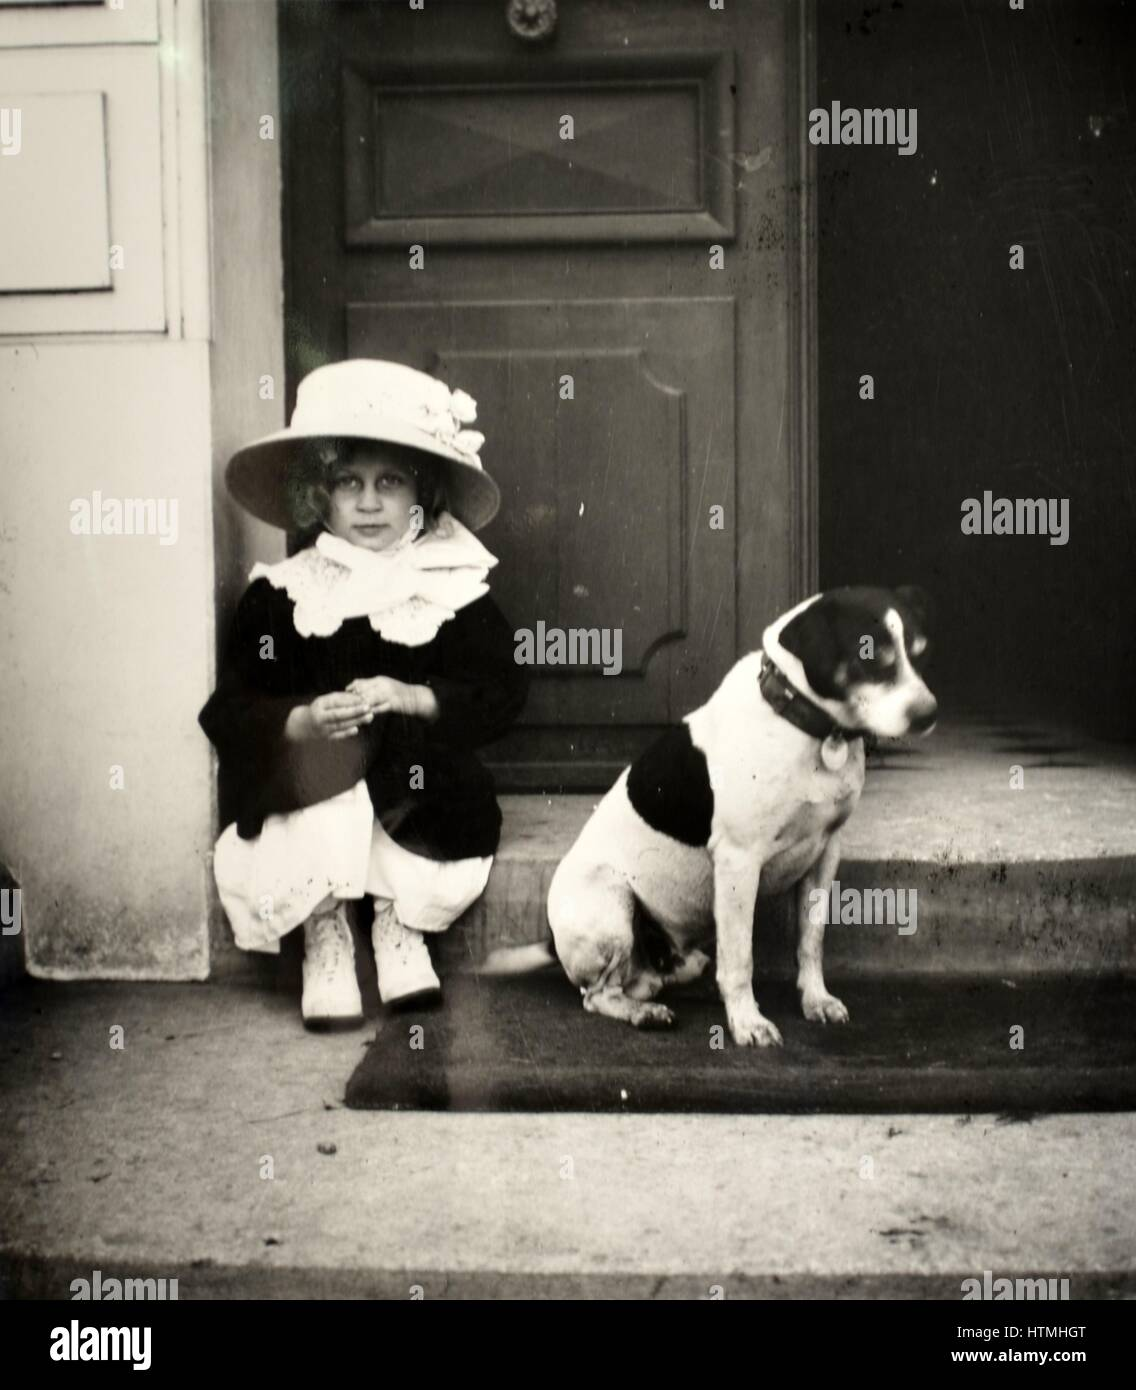 French girl photographed in a doorway with her pet dog, circa 1896 - Stock Image